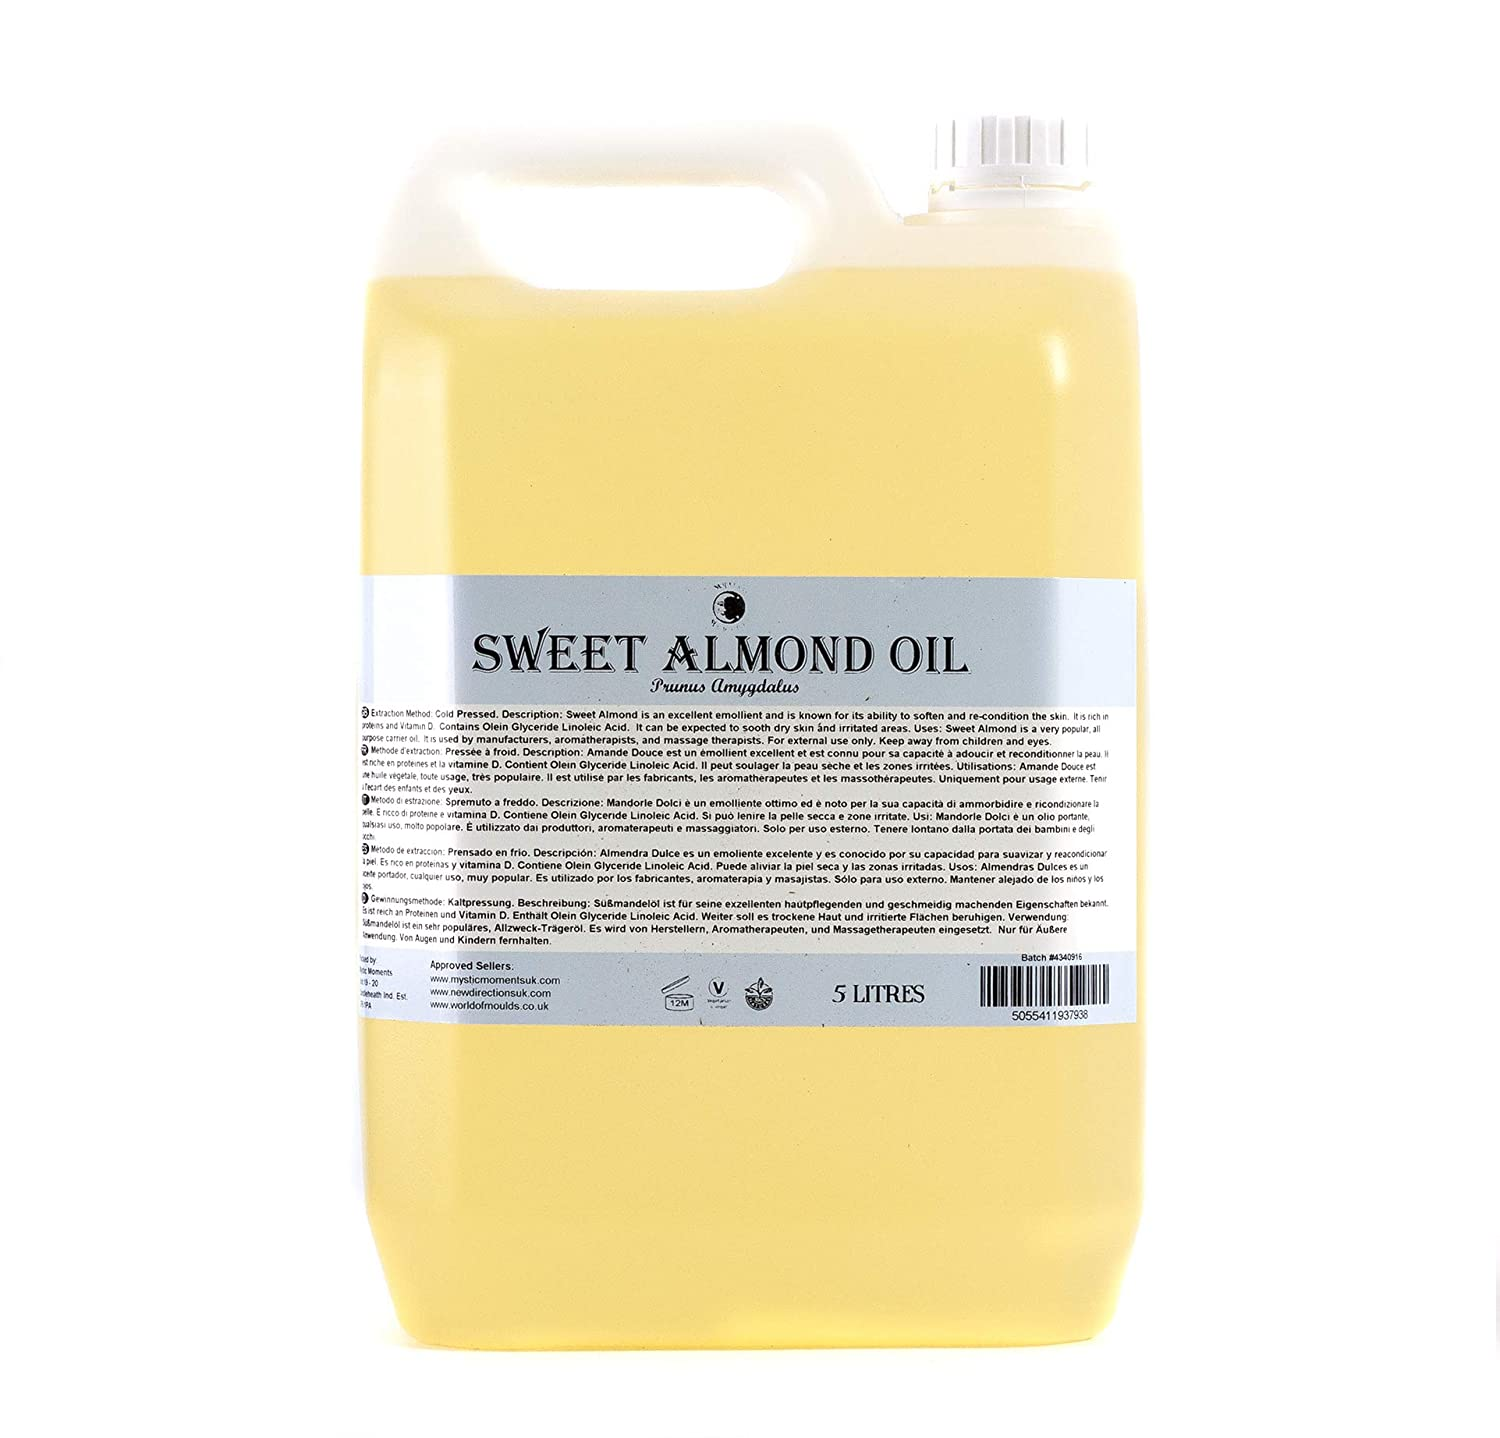 Amazon.com: Mystic Moments | Sweet Almond Carrier Oil - 5 litres - 100% Pure: Health & Personal Care